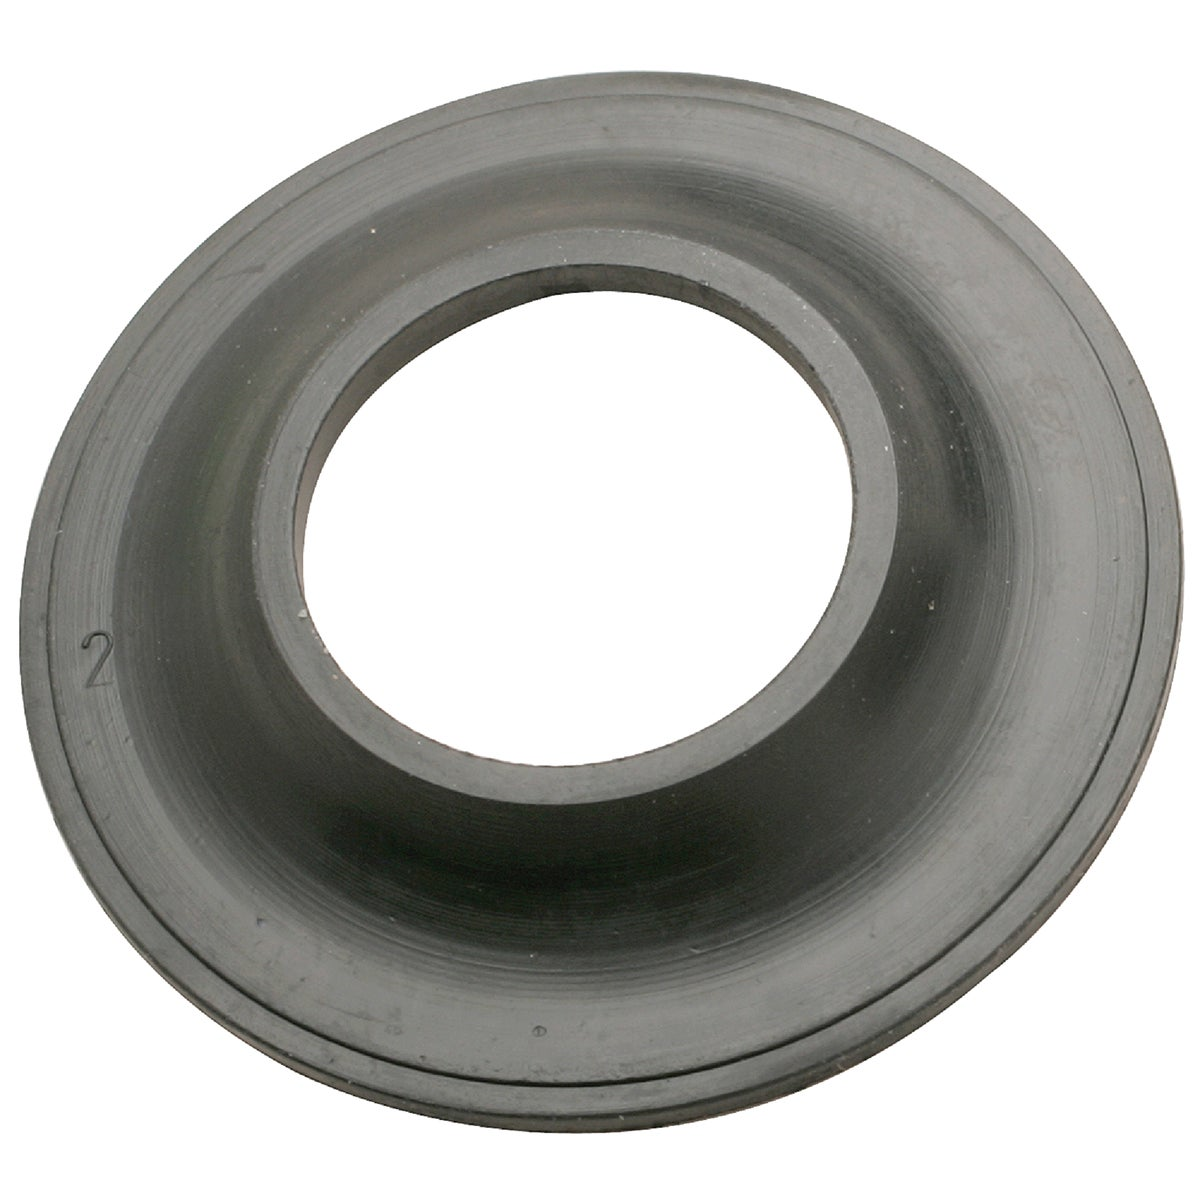 FOOT LOK RUBBER WASHER - 443862 by Plumb Pak/keeney Mfg